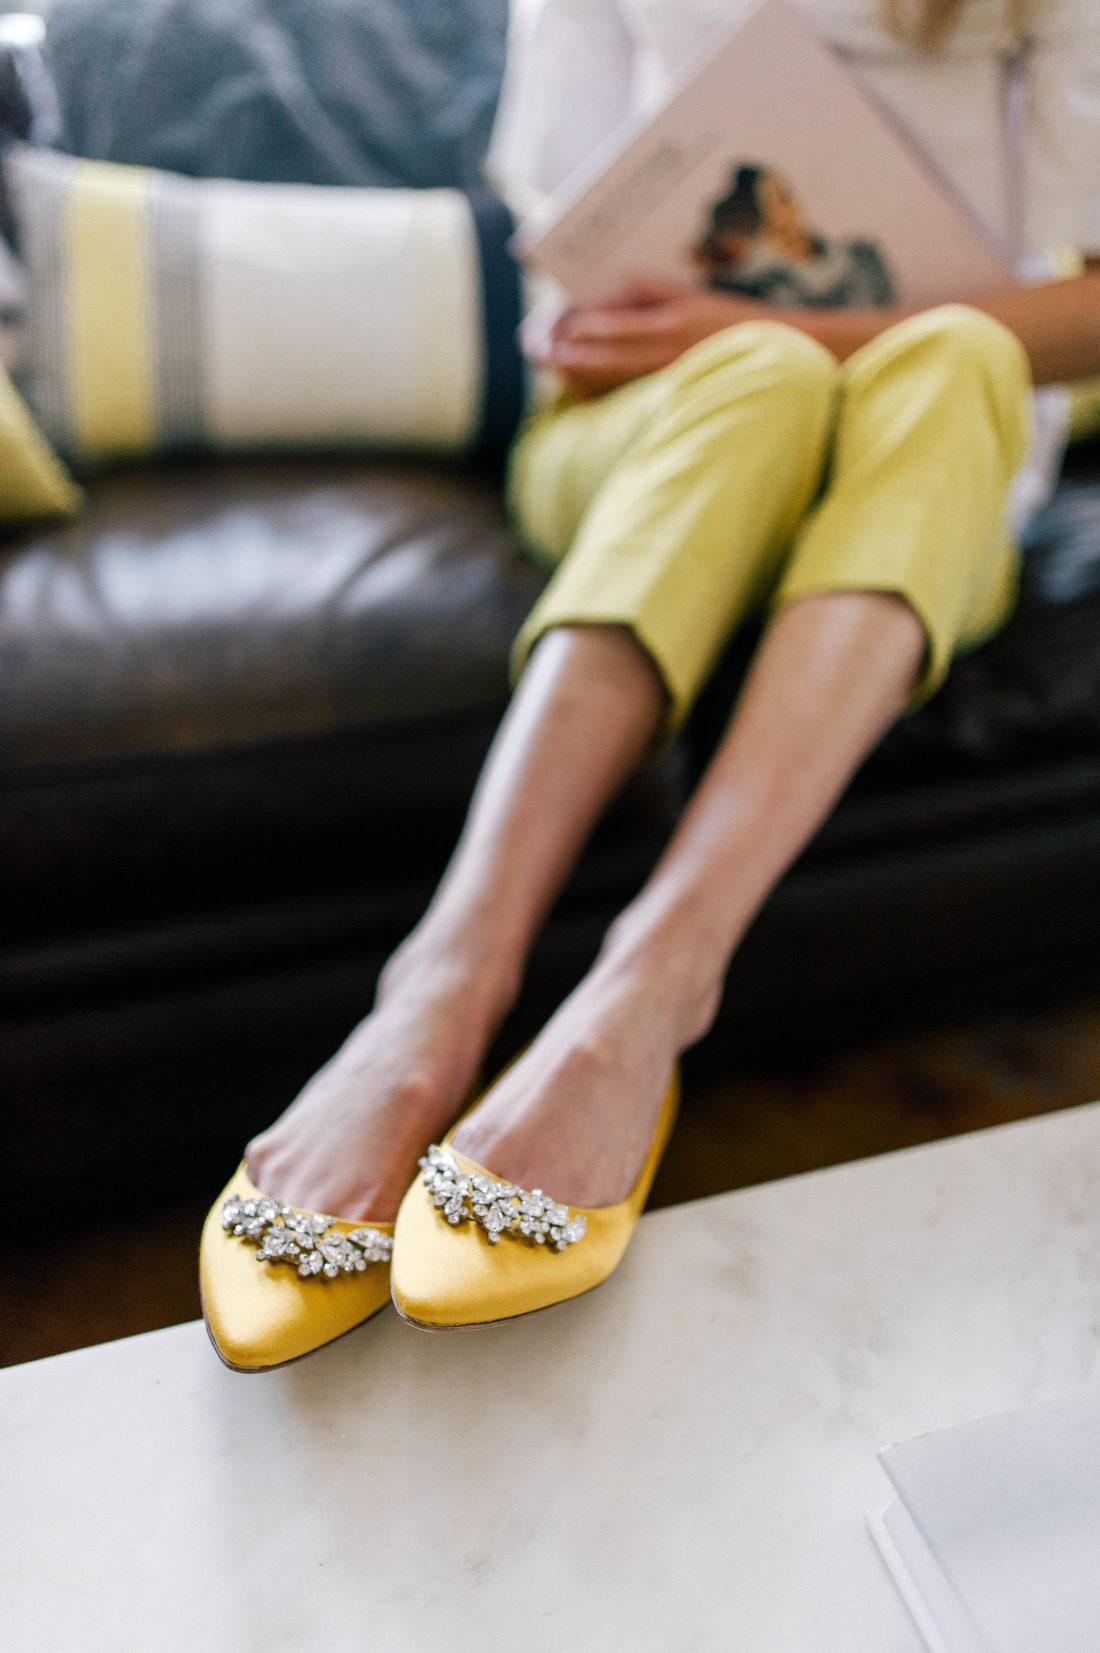 Eva Amurri Martino wears a pair of canary yellow manolo blahnik flats in the formal living room of her Connecticut home